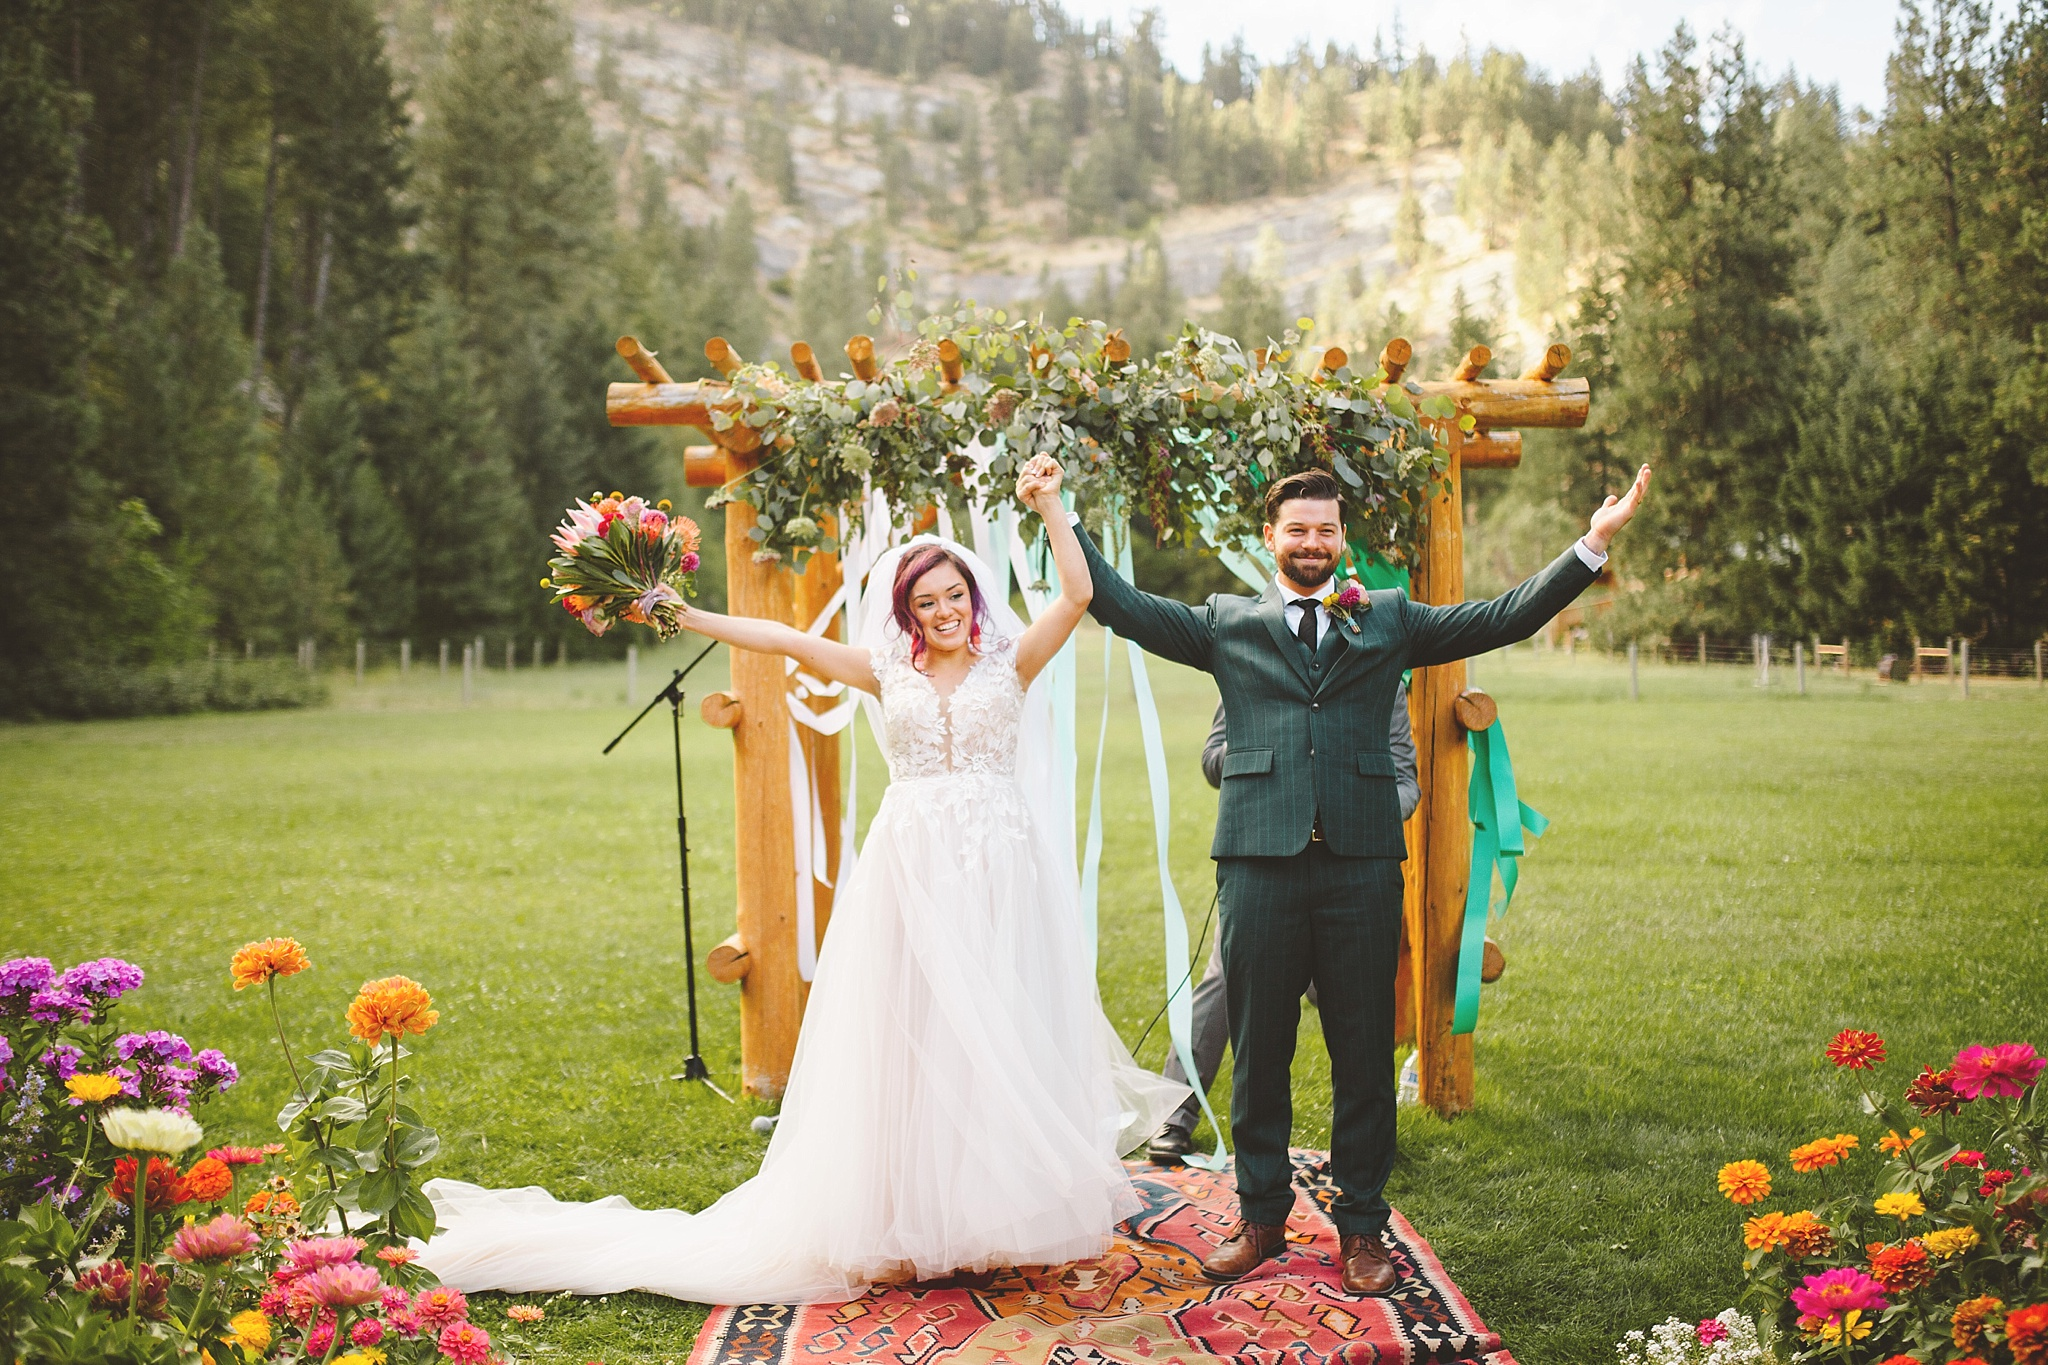 emotional grand exit at outdoor wedding wa